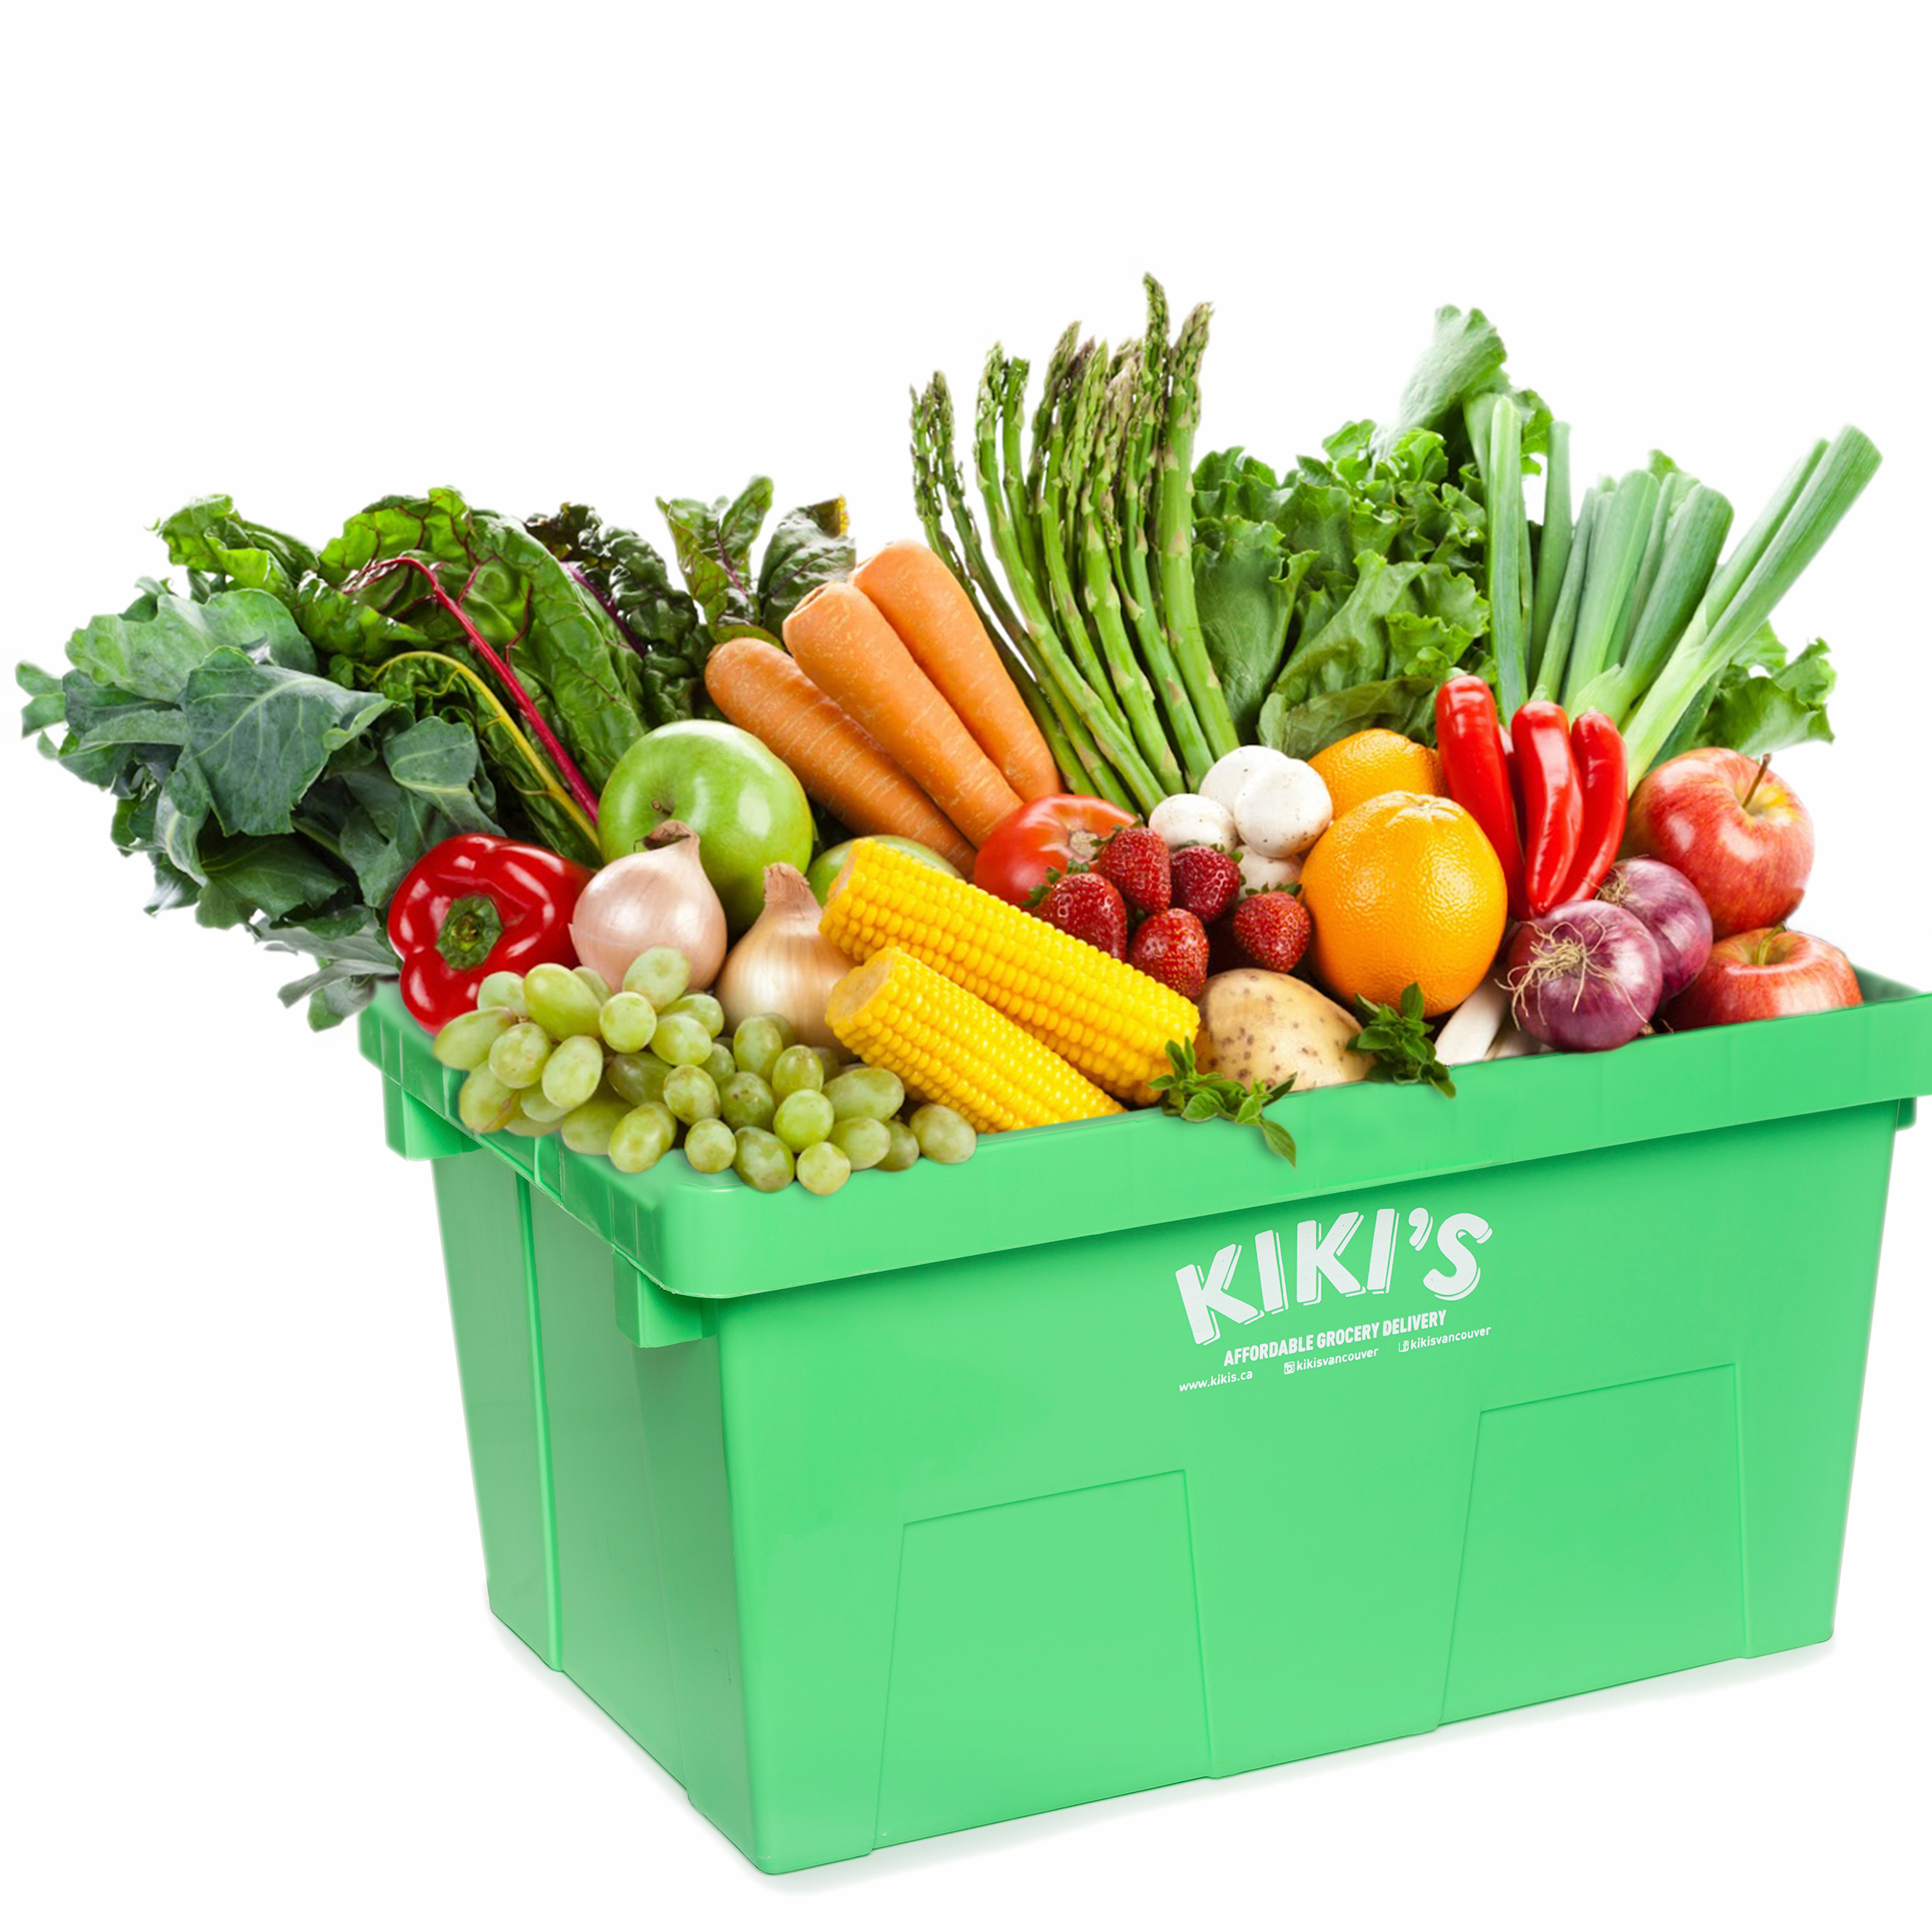 We Deliver! - Check out our new delivery service, Kiki's.The Same Great PricesNo LineupsFree Delivery over $30